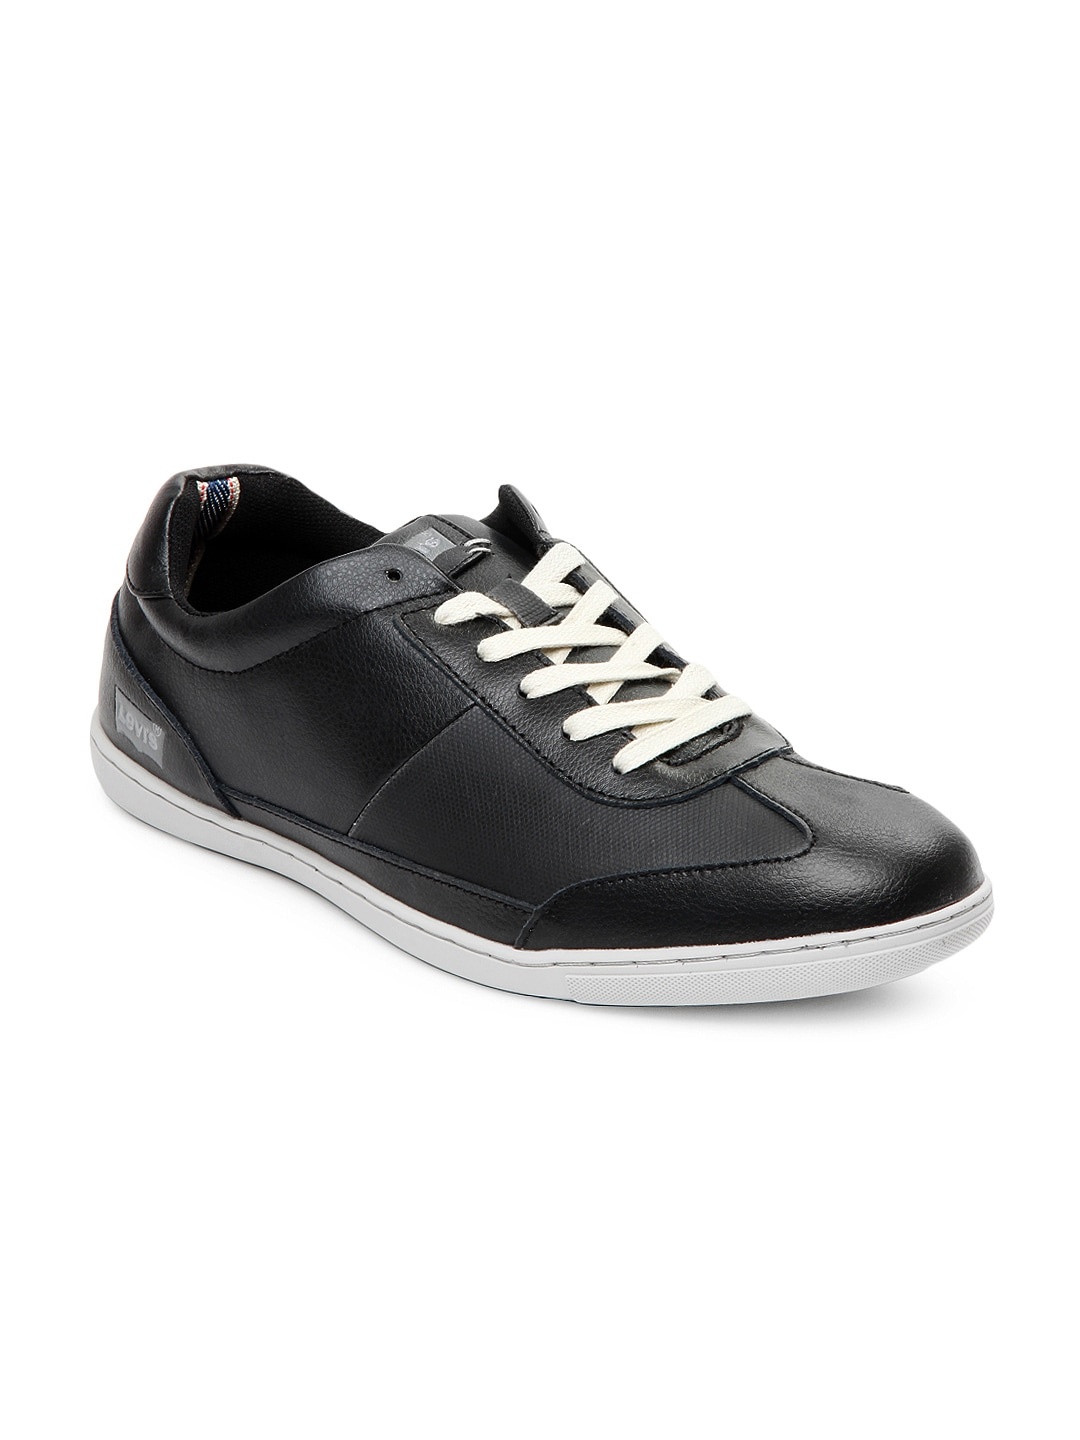 buy levis black casual shoes 632 footwear for